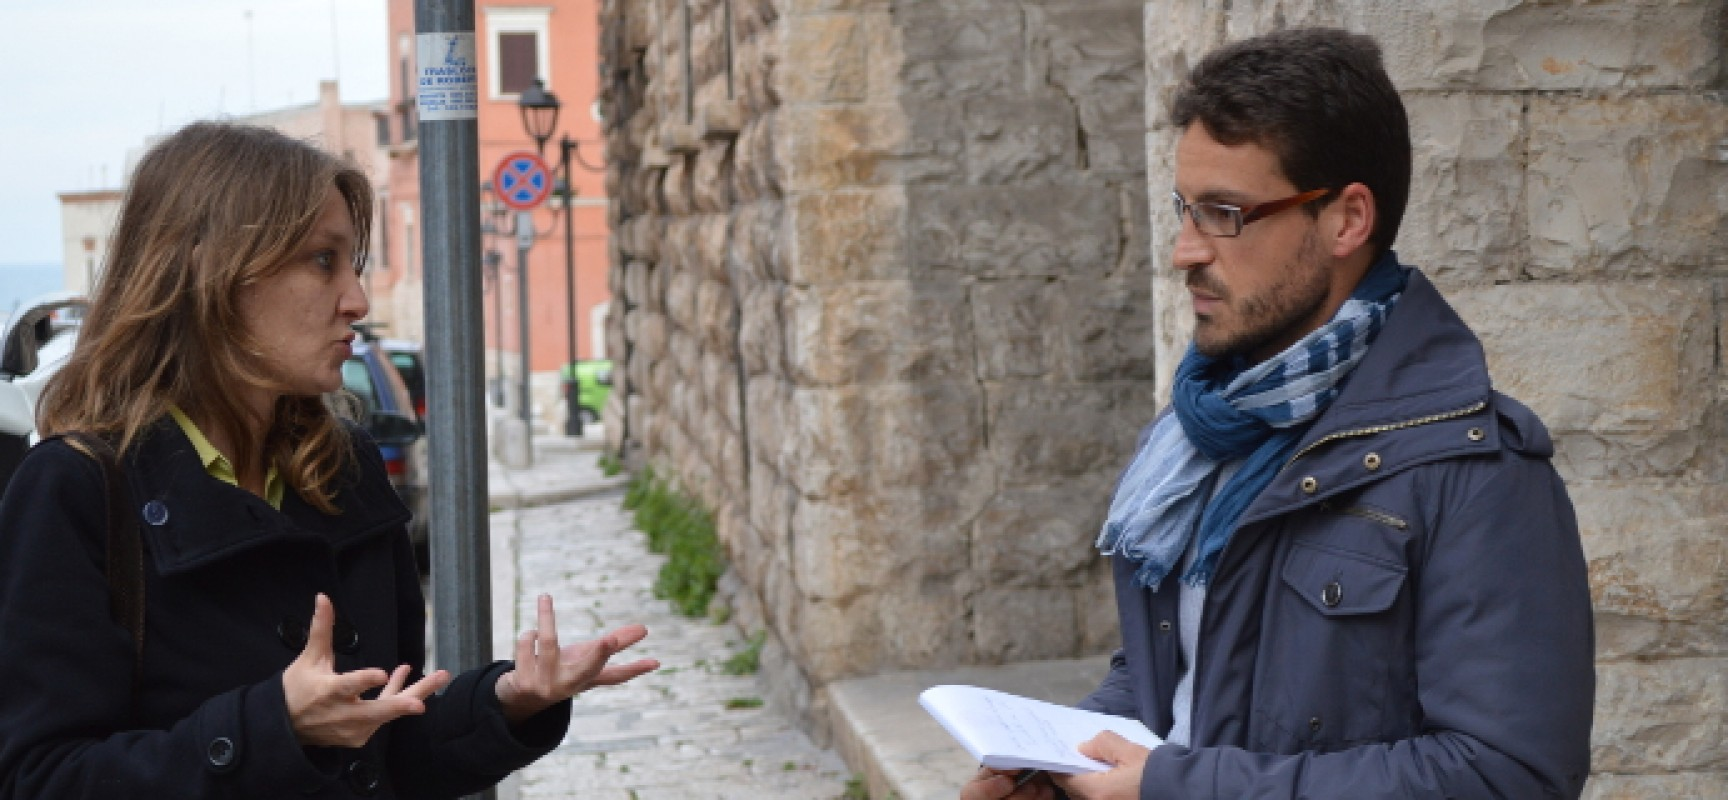 Accessibilità, timida sufficienza per Bisceglie